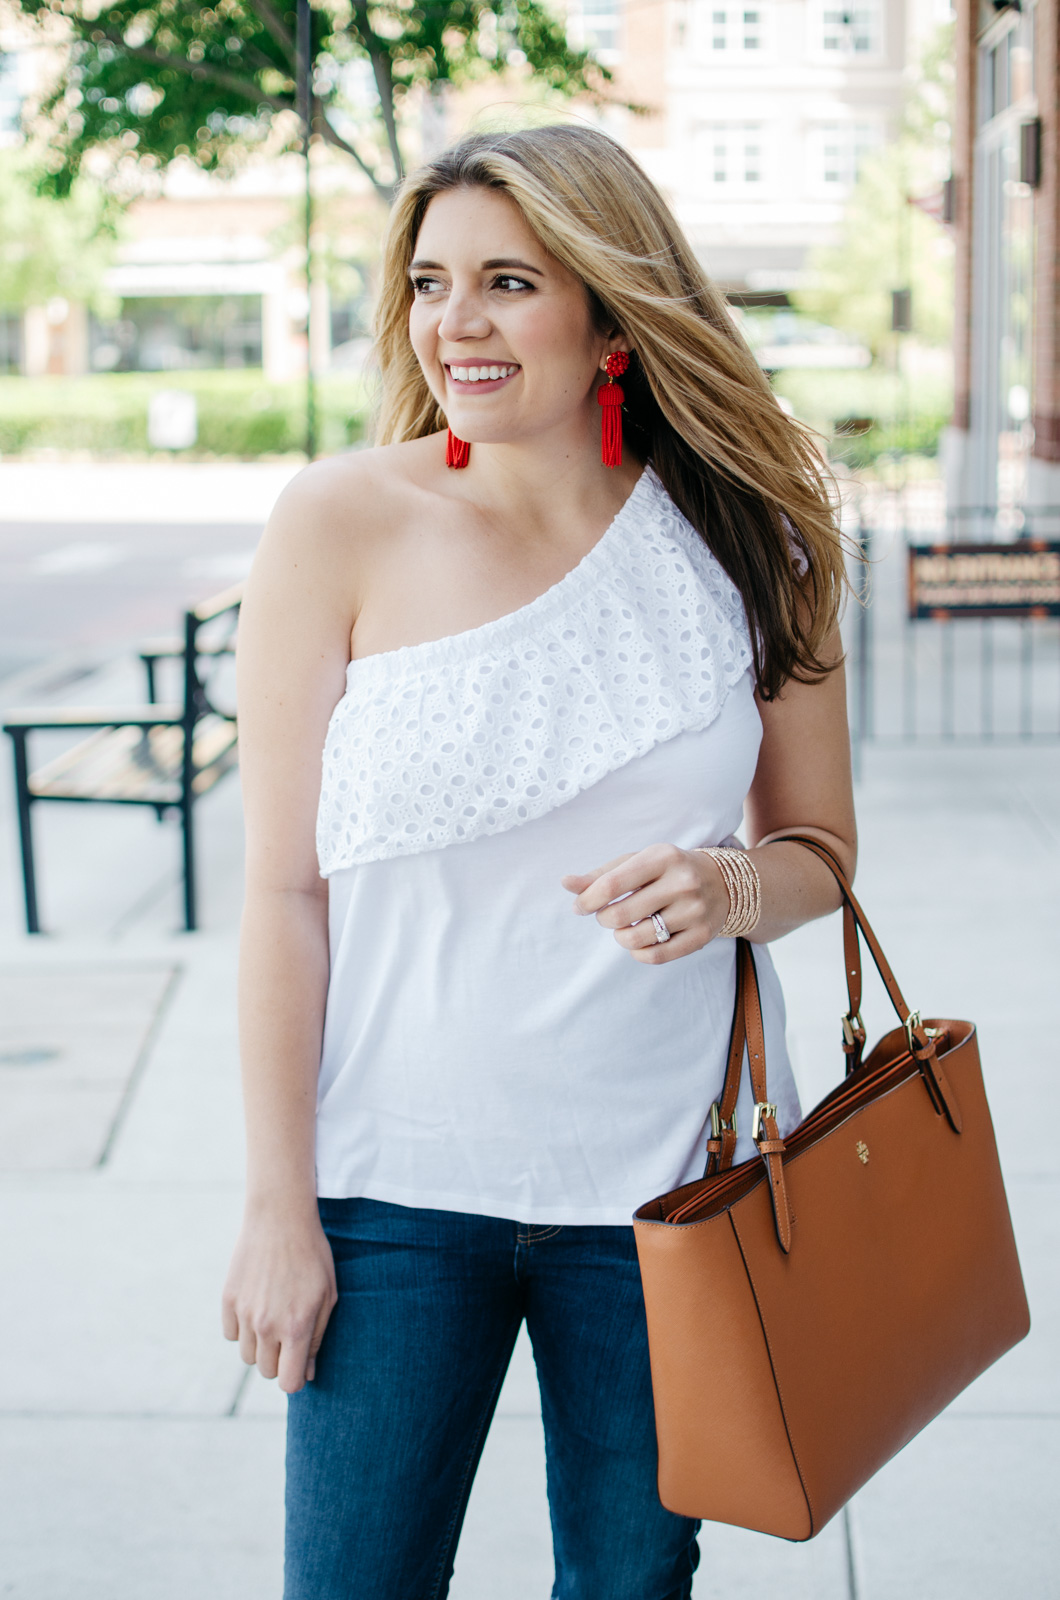 first trimester style - one shoulder tee for spring | For more maternity outfits, head to bylaurenm.com!